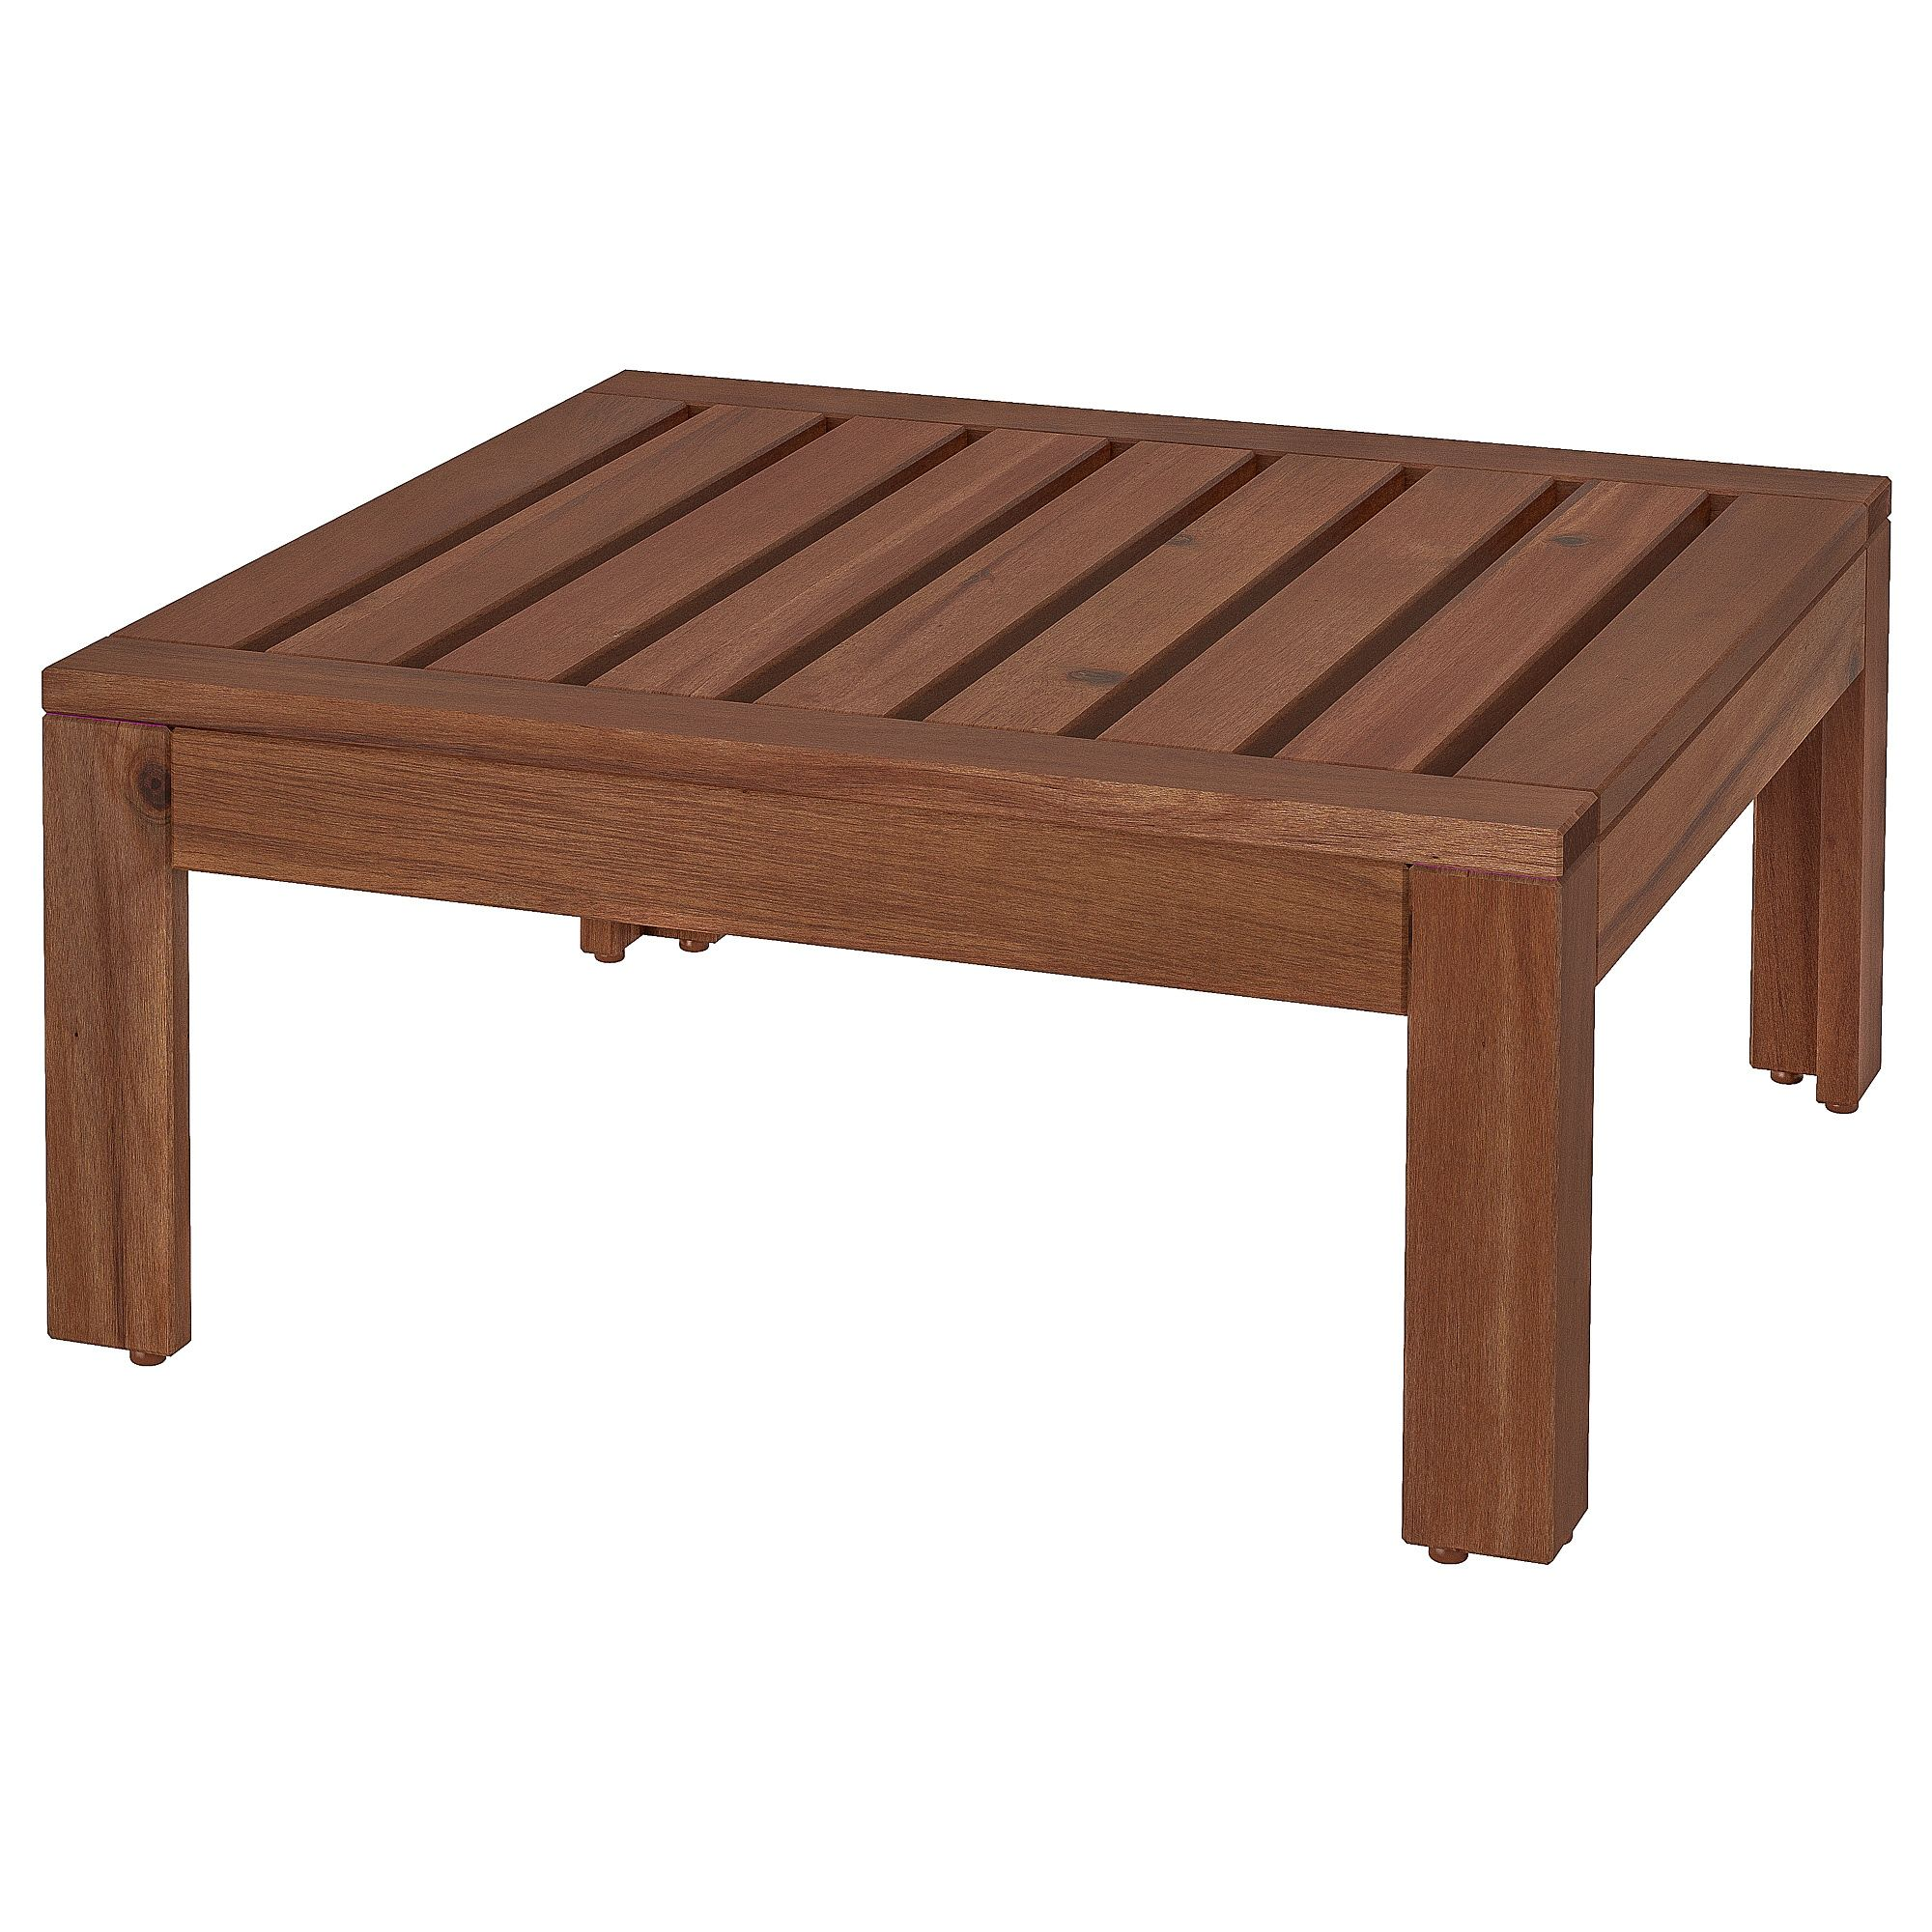 ÄPPLARÖ Tablestool section, outdoor brown stained brown